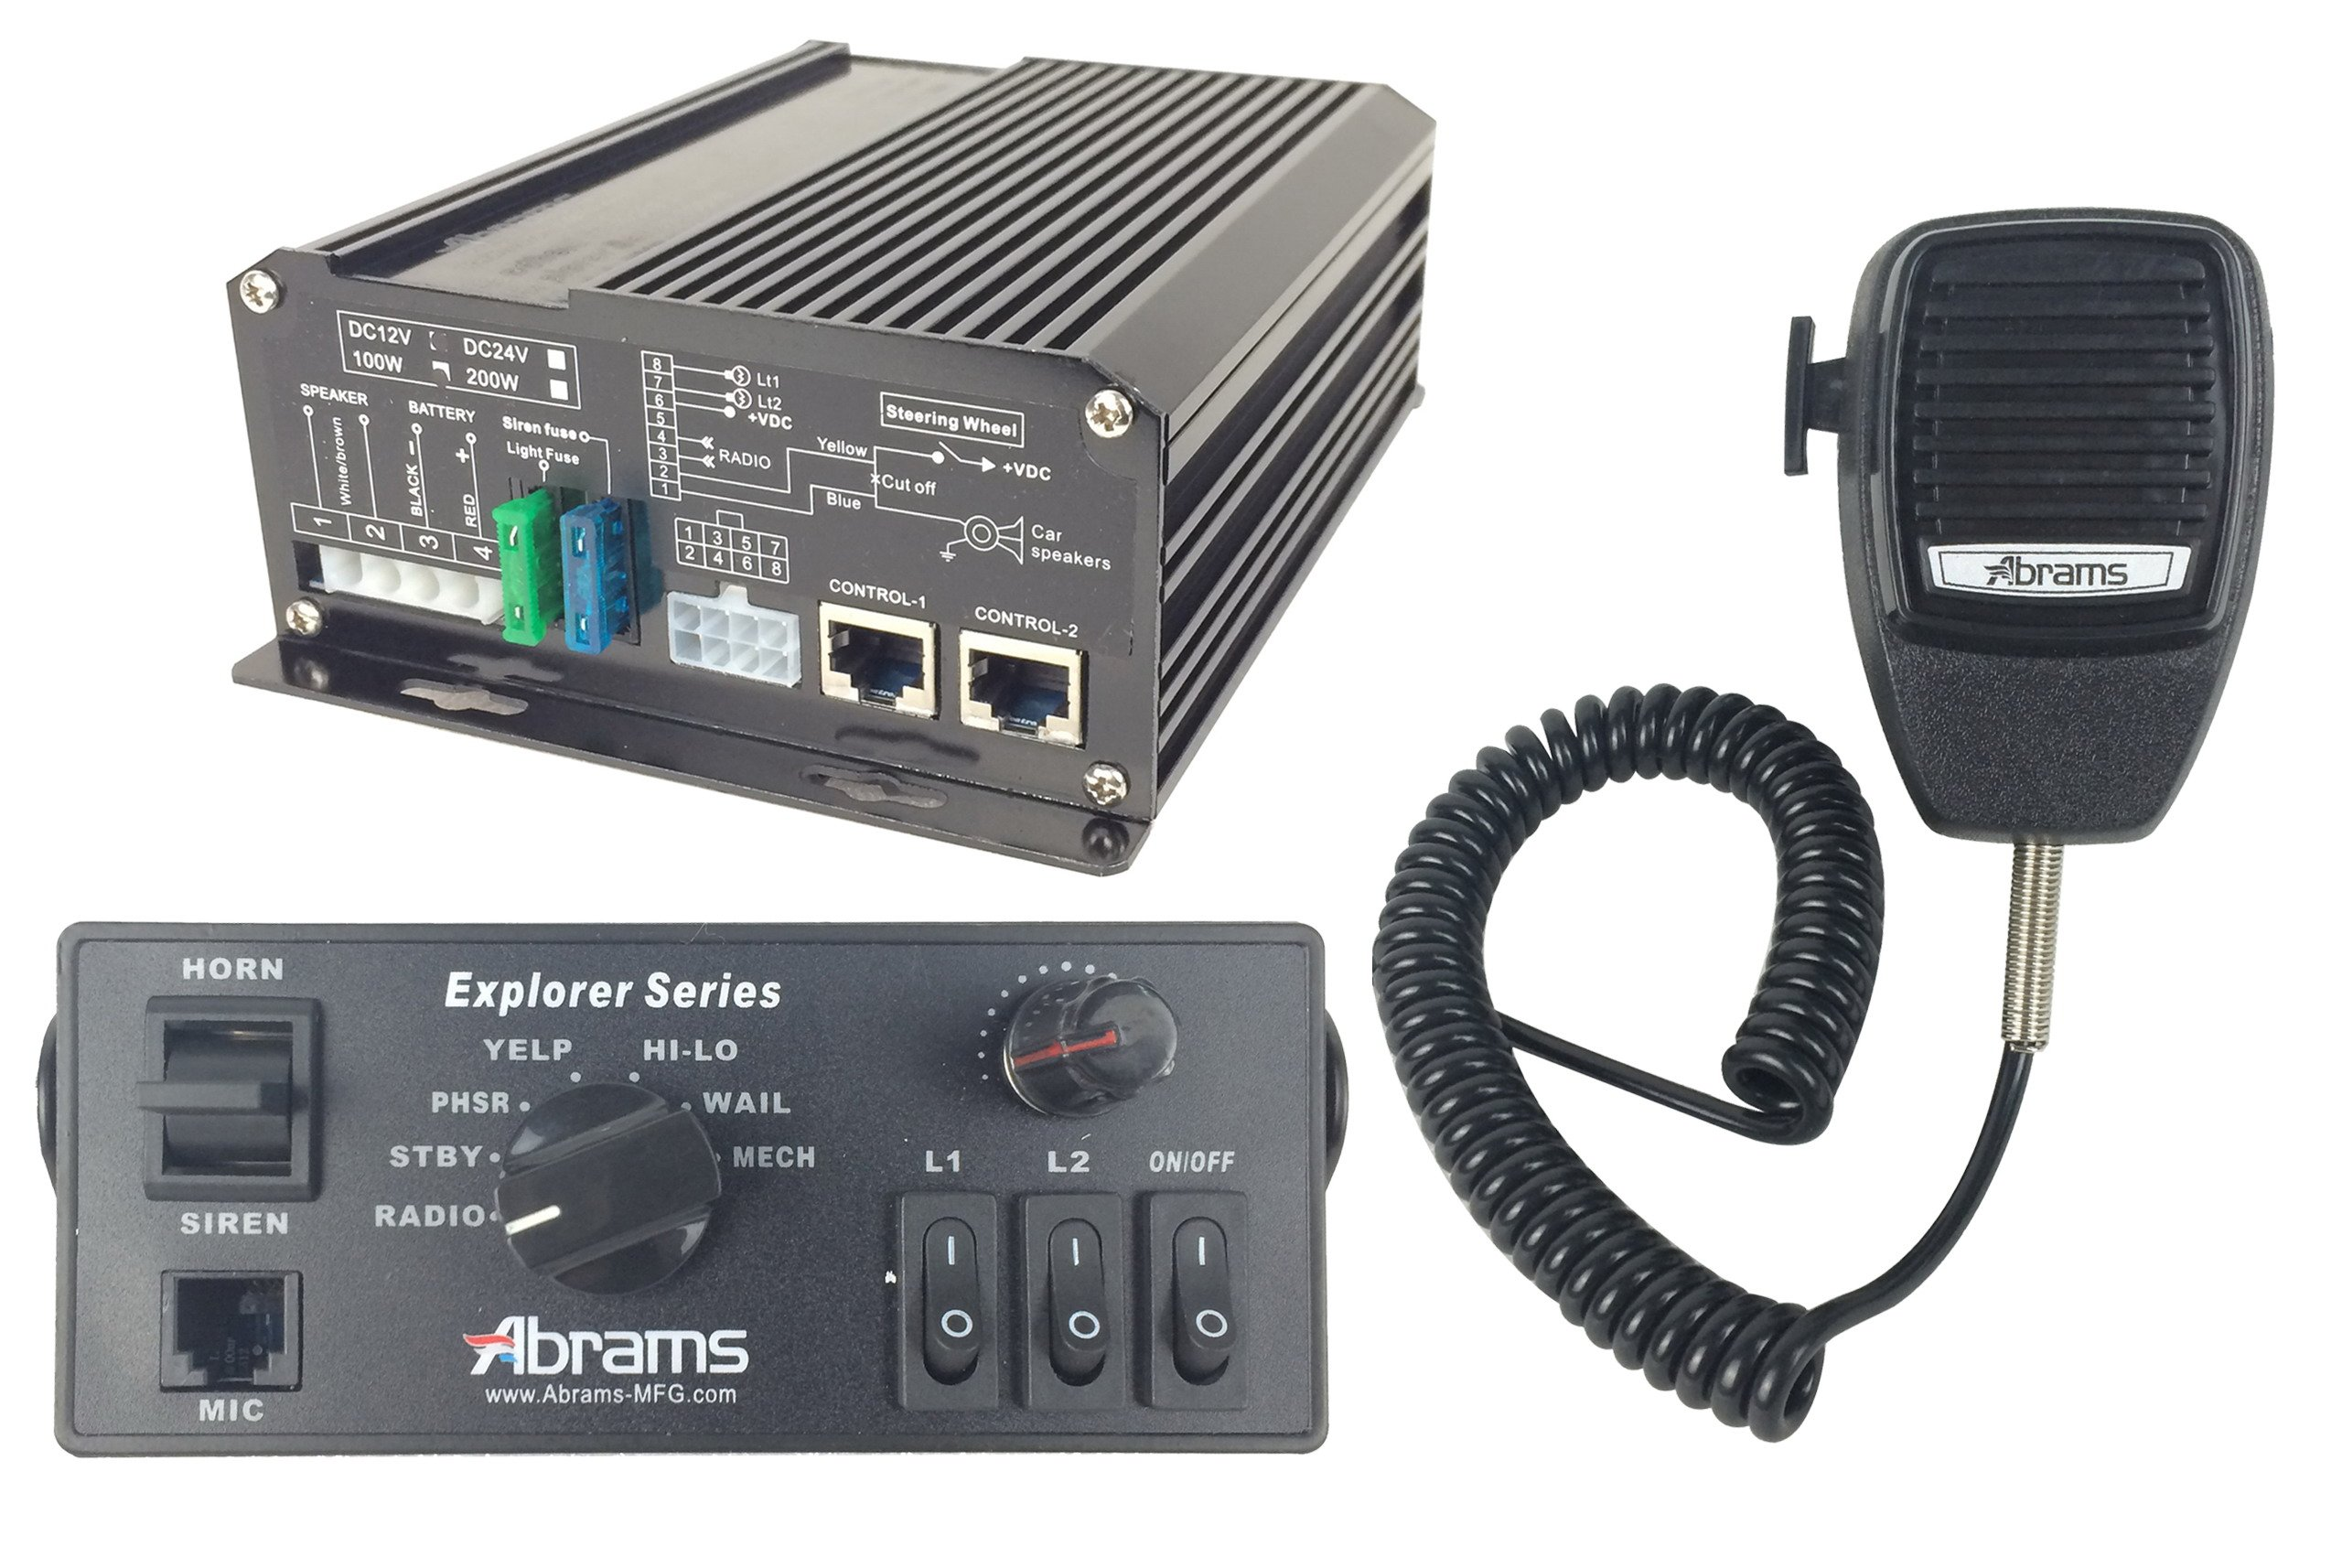 ABRAMS EXP-ULTRA-KIT/100-C Explorer 100W Console Mount Siren System Set with Mechanical Tones, Comes with PA Mircophone & 100W Ultra Siren Speaker